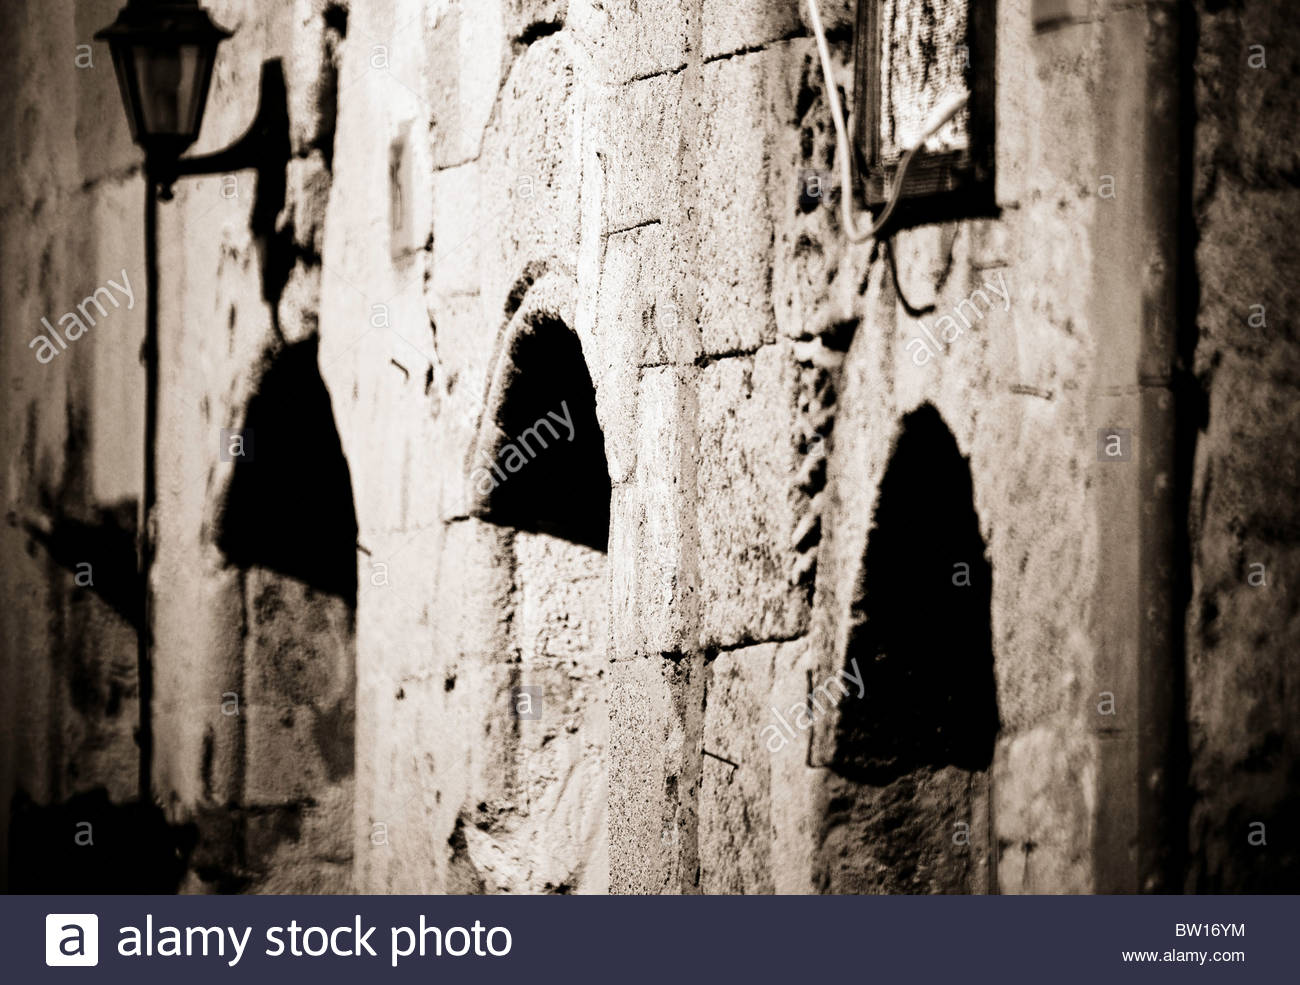 hight resolution of ancient greek stone building archeology greece rhodes castle old town greece stock image